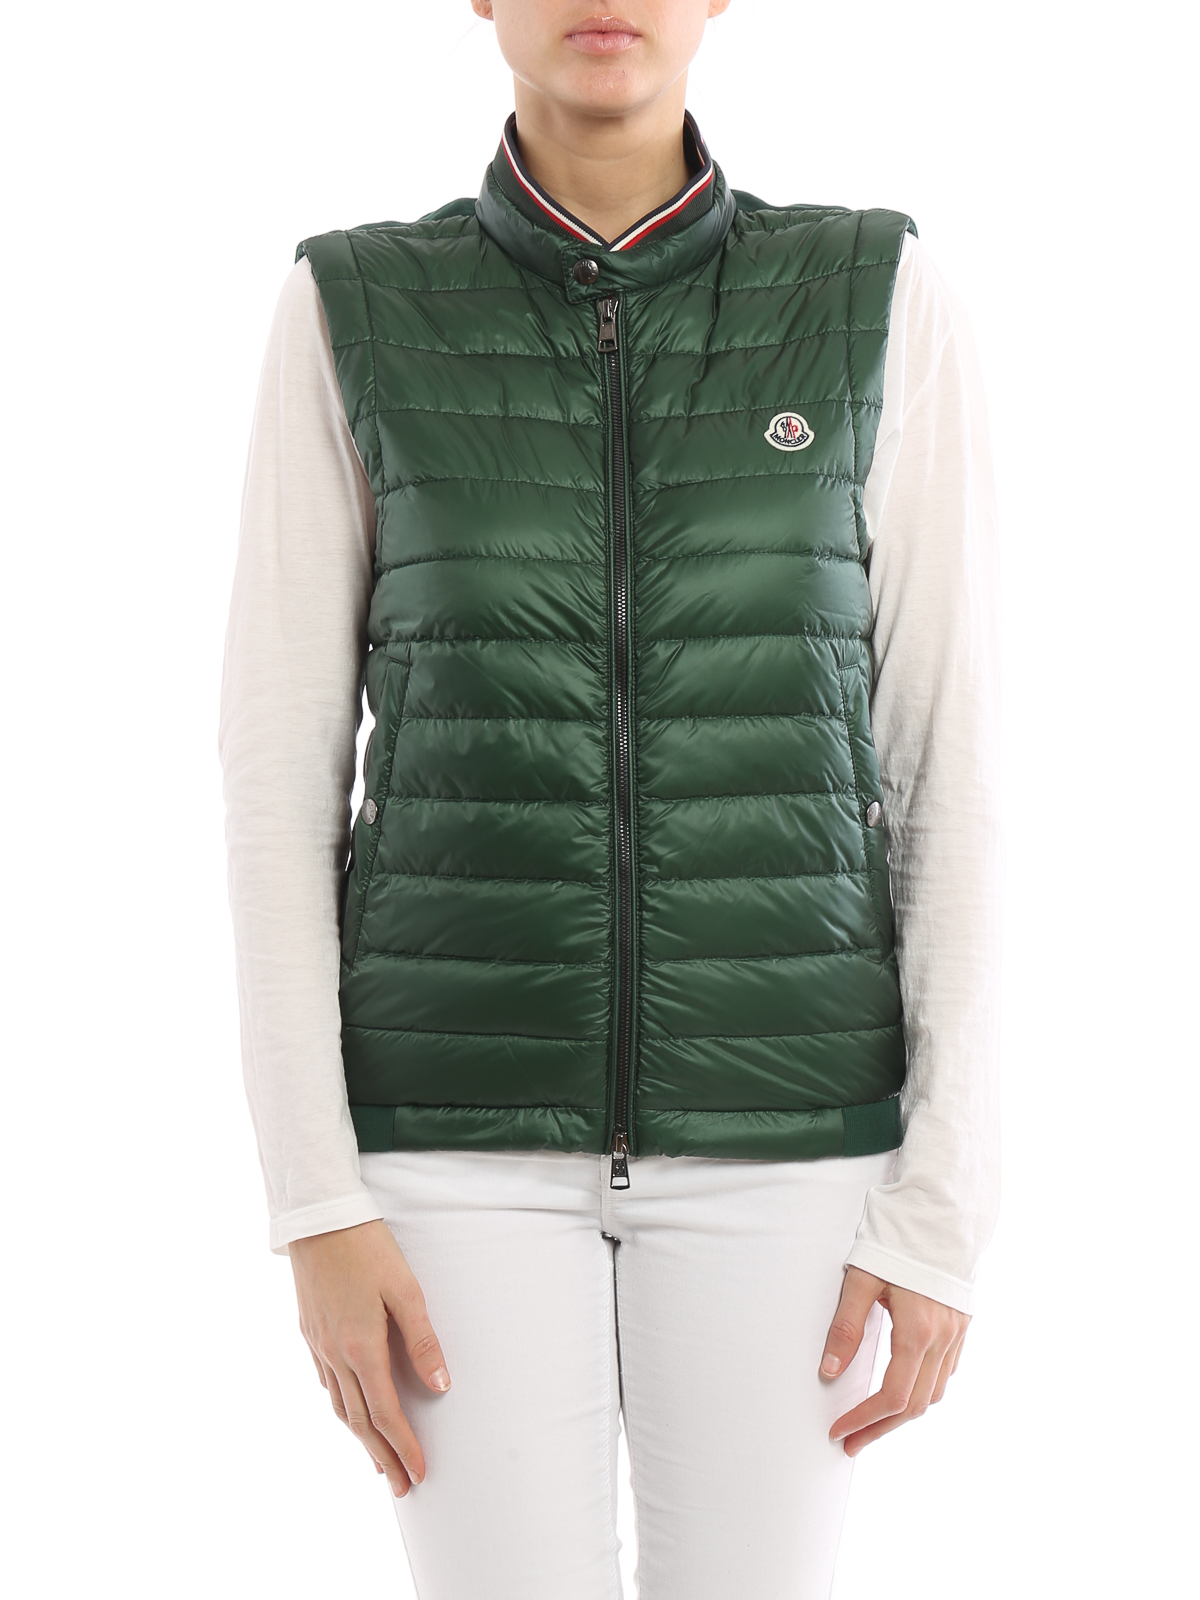 zipped padded gilet - Green Moncler Footaction Cheap Price Buy Cheap Best Place Free Shipping 2018 New Footlocker For Sale Cheap Price Outlet dPMc9i